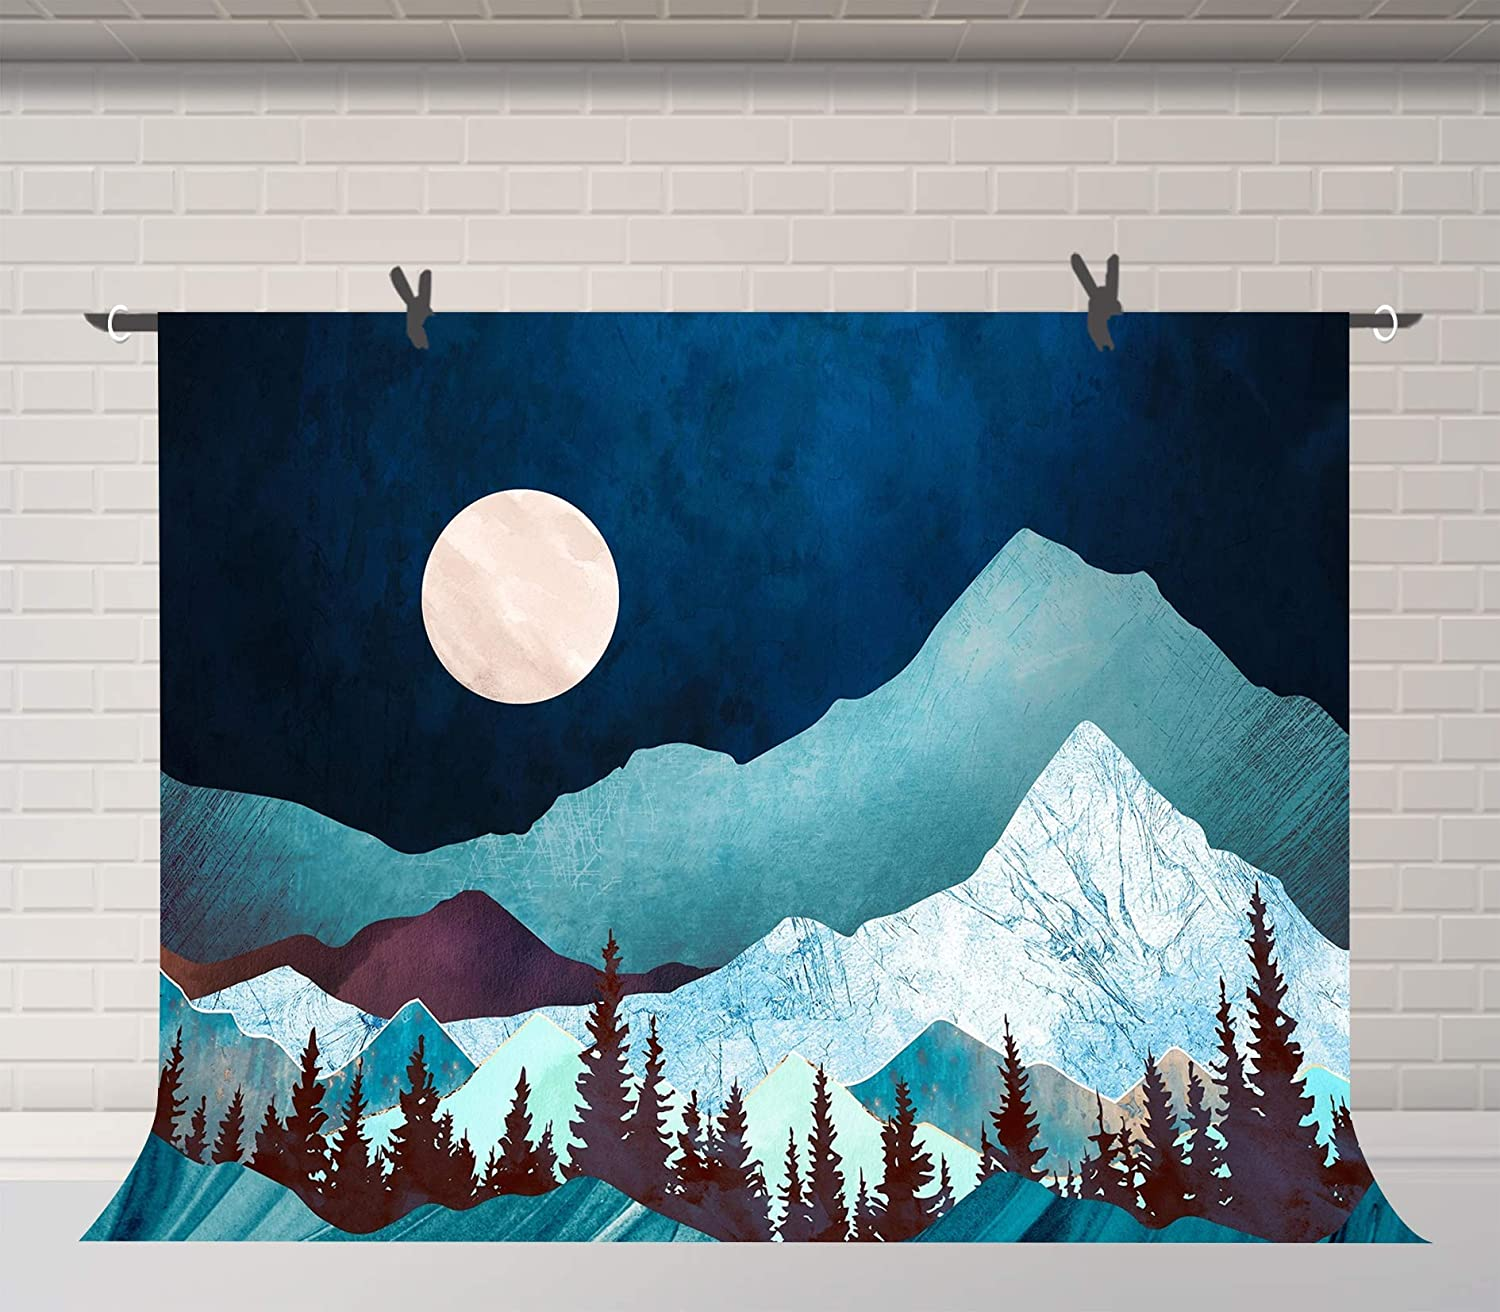 10x6.5ft Moon Mountain Backdrop Photography Props for Men Room Wall Mural Decor Portrait Photos,Background LHFU679